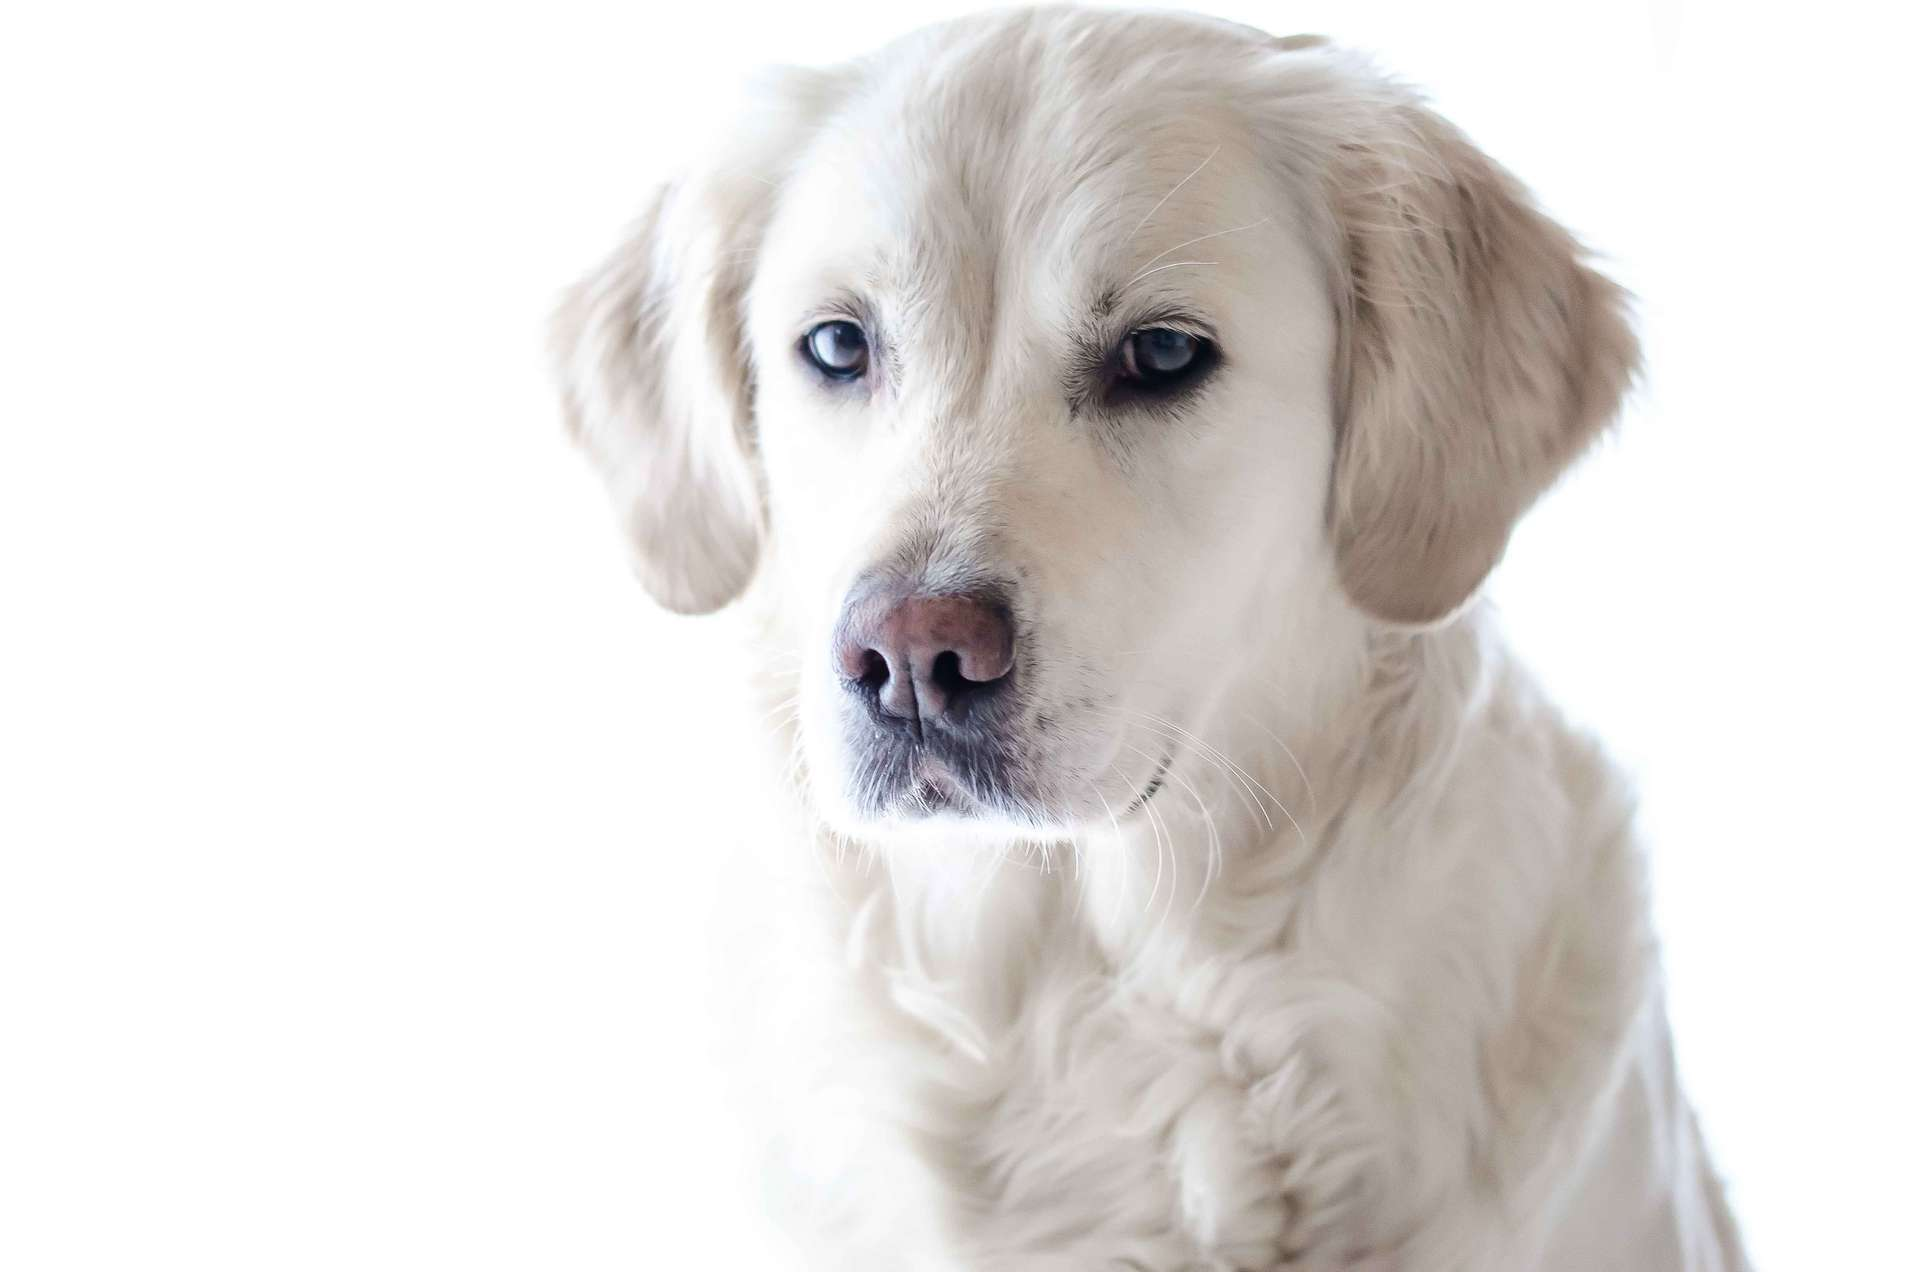 Labrador retrievers may be predisposed to having allergies, while poodles and terriers almost never get them.